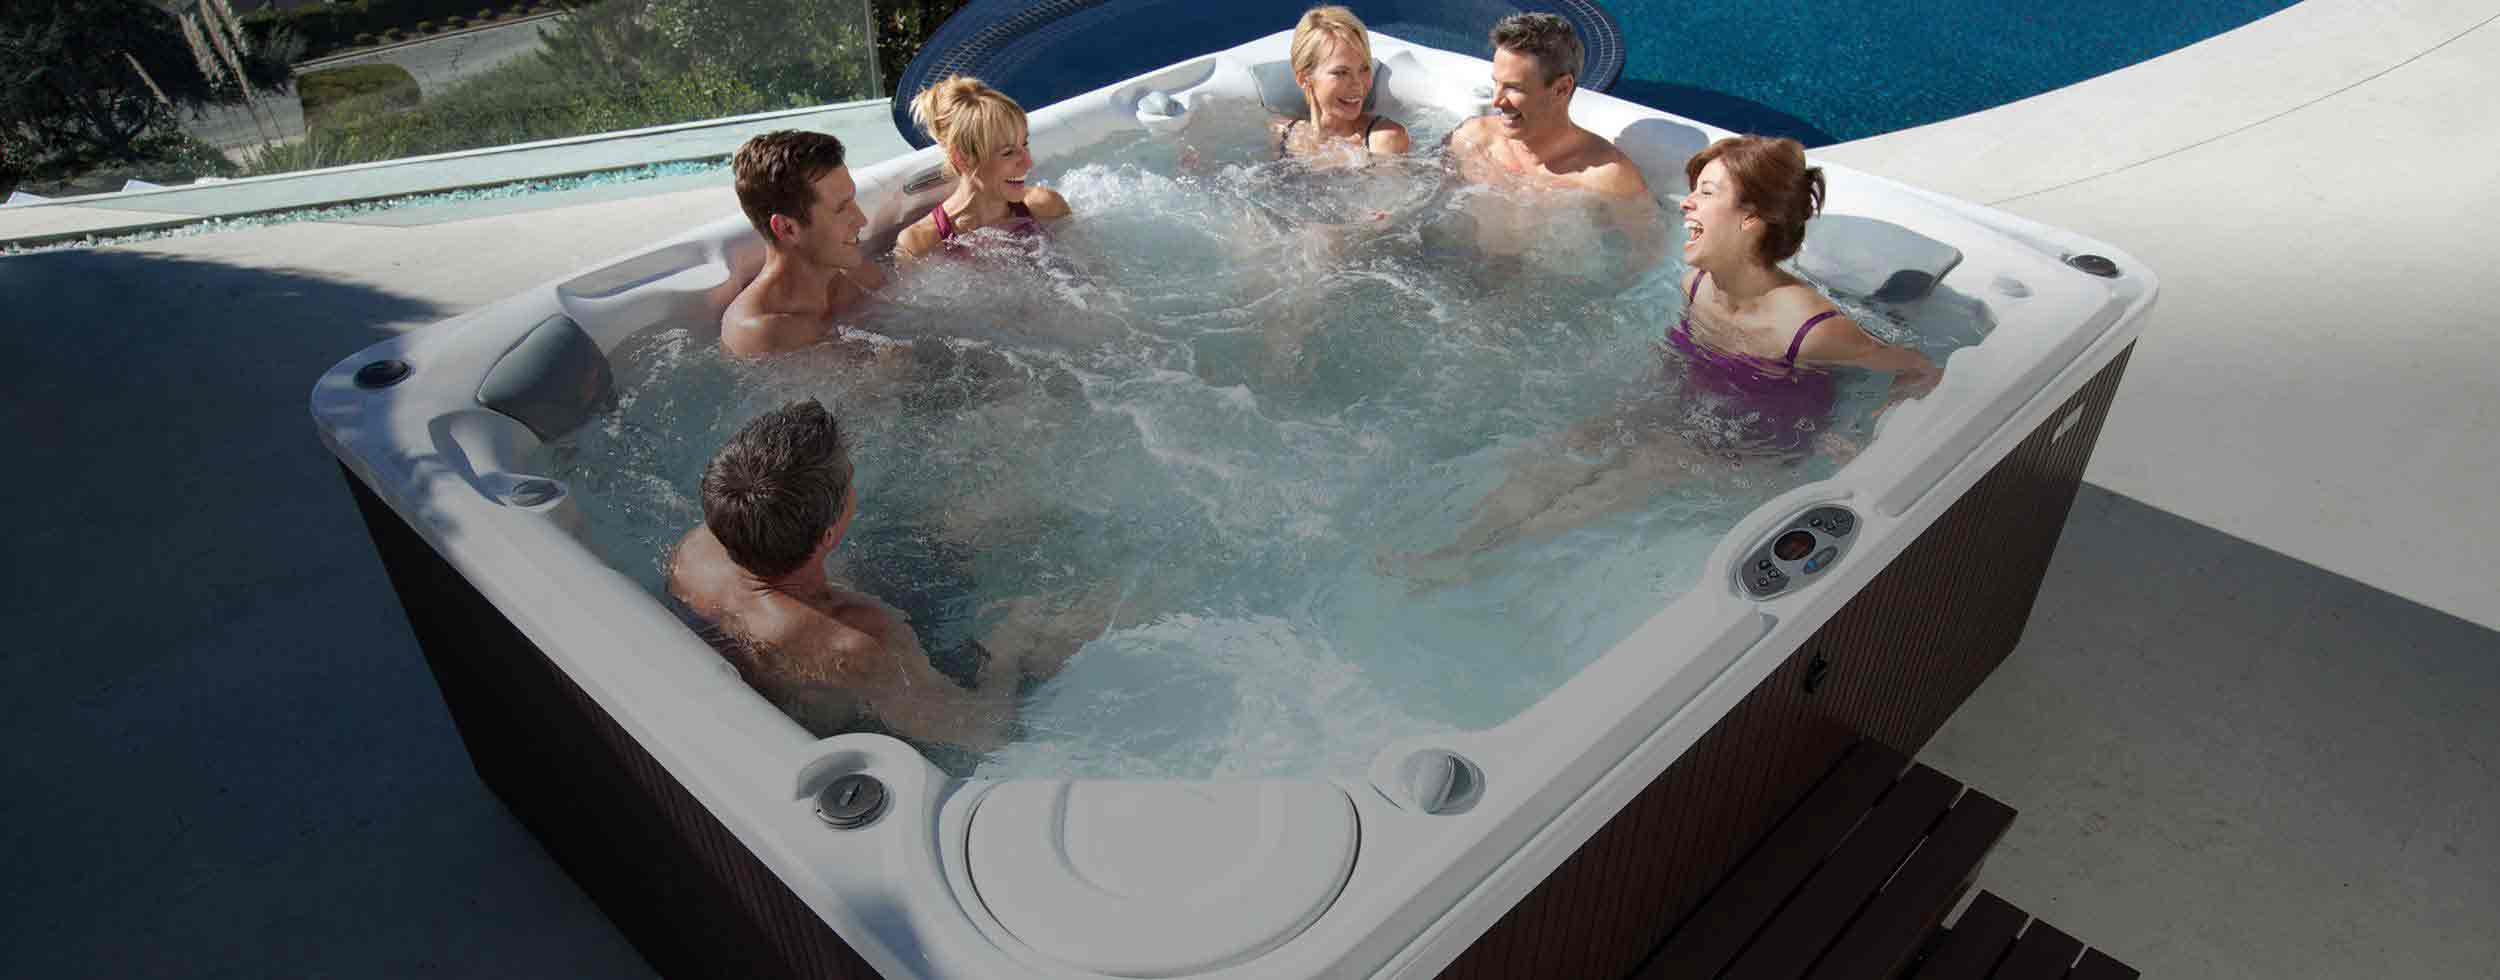 say showroom dealers store hot our vaughan what jacuzzi tub ontario have tubs dealer customers in to